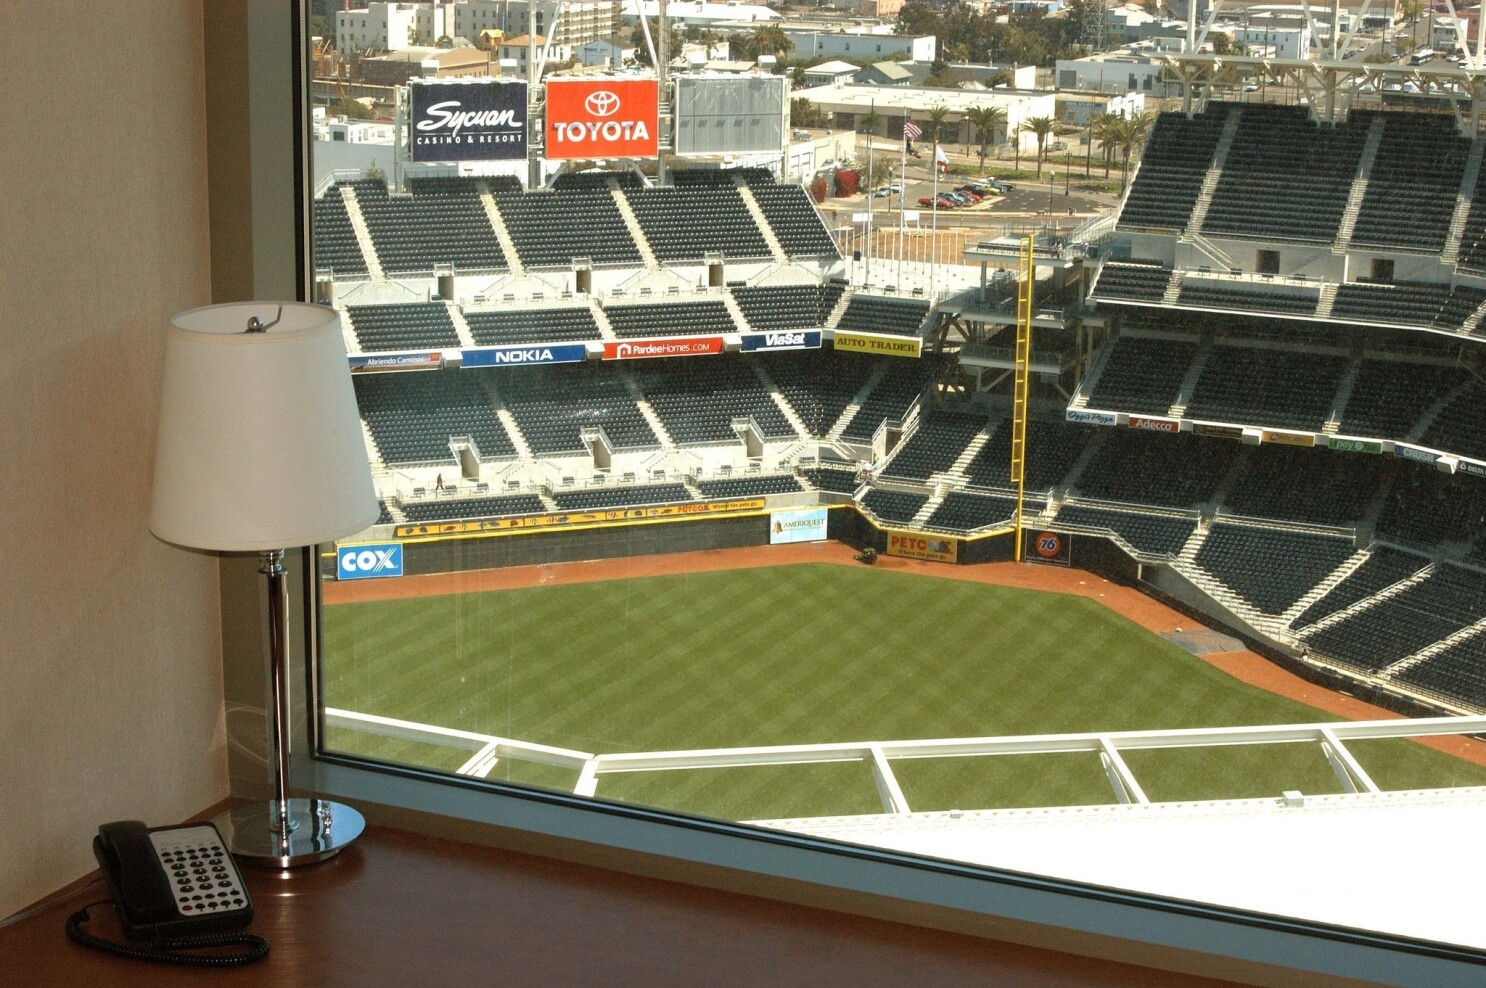 Daily Deal: Beer, brats and baseball at Omni San Diego - Los